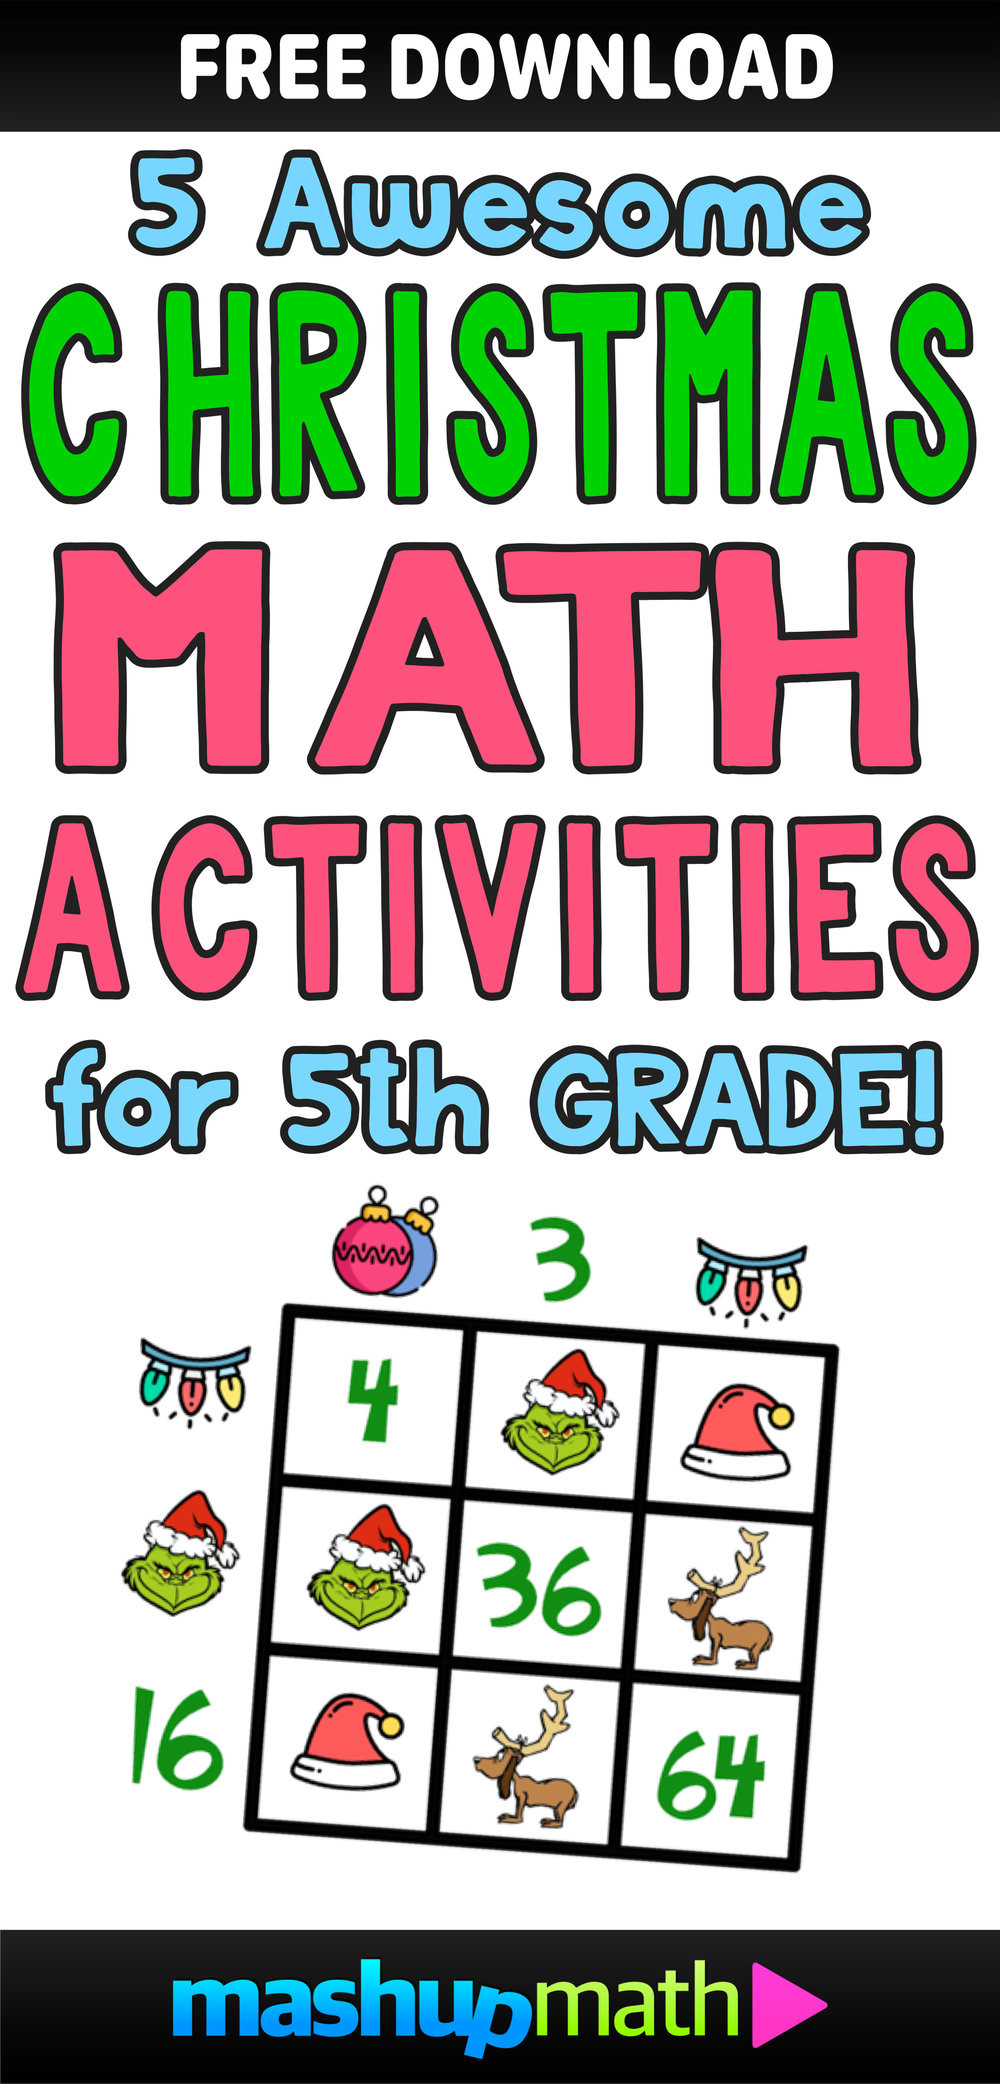 Christmas Math Worksheets 5th Grade 5 Awesome Christmas Math Activities for 5th Grade — Mashup Math